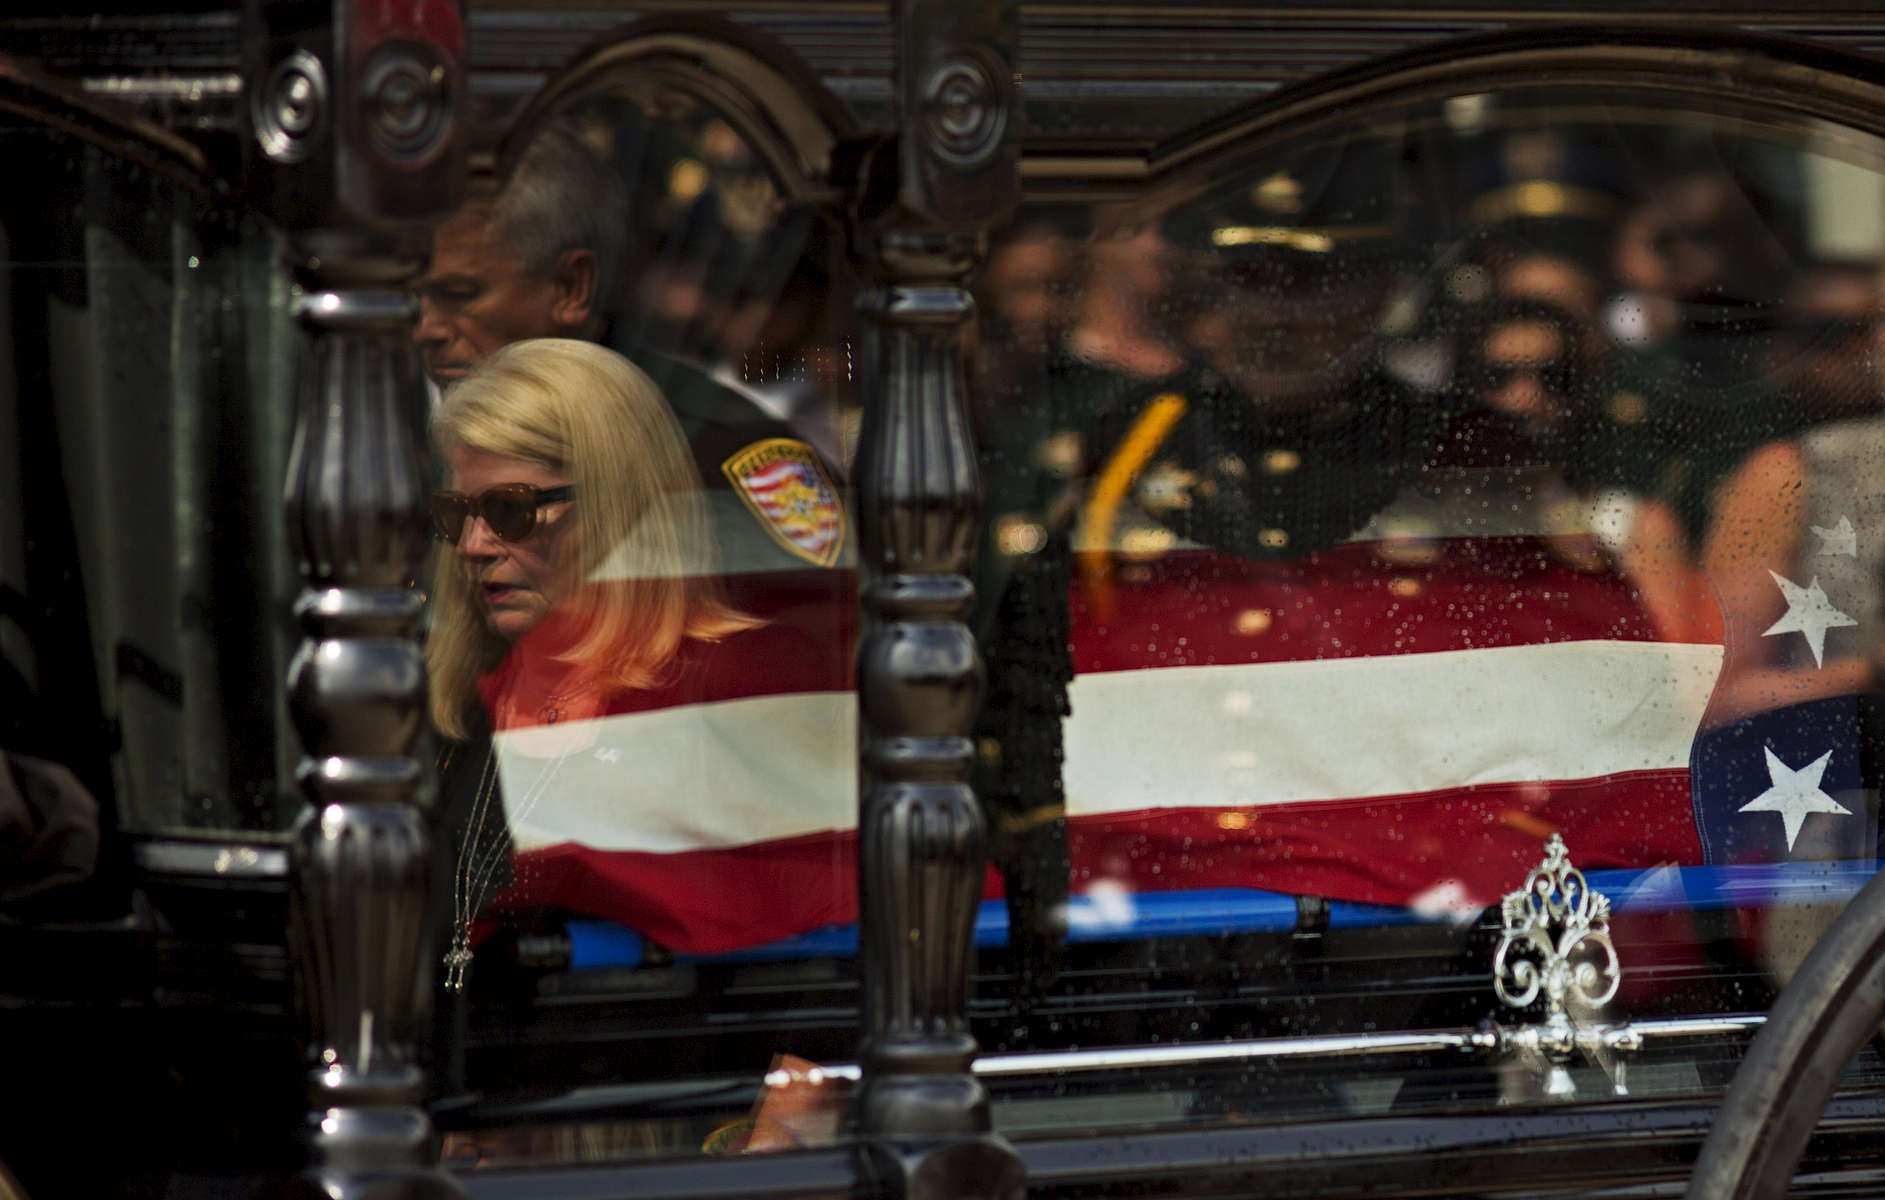 East Baton Rouge Parish Sheriff Sid  Gautreaux and his wife are reflected in the glass of the horse-drawn carriage carrying the casket of East Baton Rouge Sheriff's Deputy Brad Garafola at the Istrouma Baptist Church in Baton Rouge, La. USA, Saturday, July 23, 2016. Garafola is survived by a wife and four children; sons ages 21 and 12; and daughters ages 15 and 7. {quote}When that assassin's bullet targeted our heroes — and he was an assassin — he not only targeted them, he targeted the city. He targeted his country, and it touched the soul of the entire nation,{quote} Vice President of the United States Joe Biden said at a memorial for the three slain officers six days later. (Max Becherer/AP)